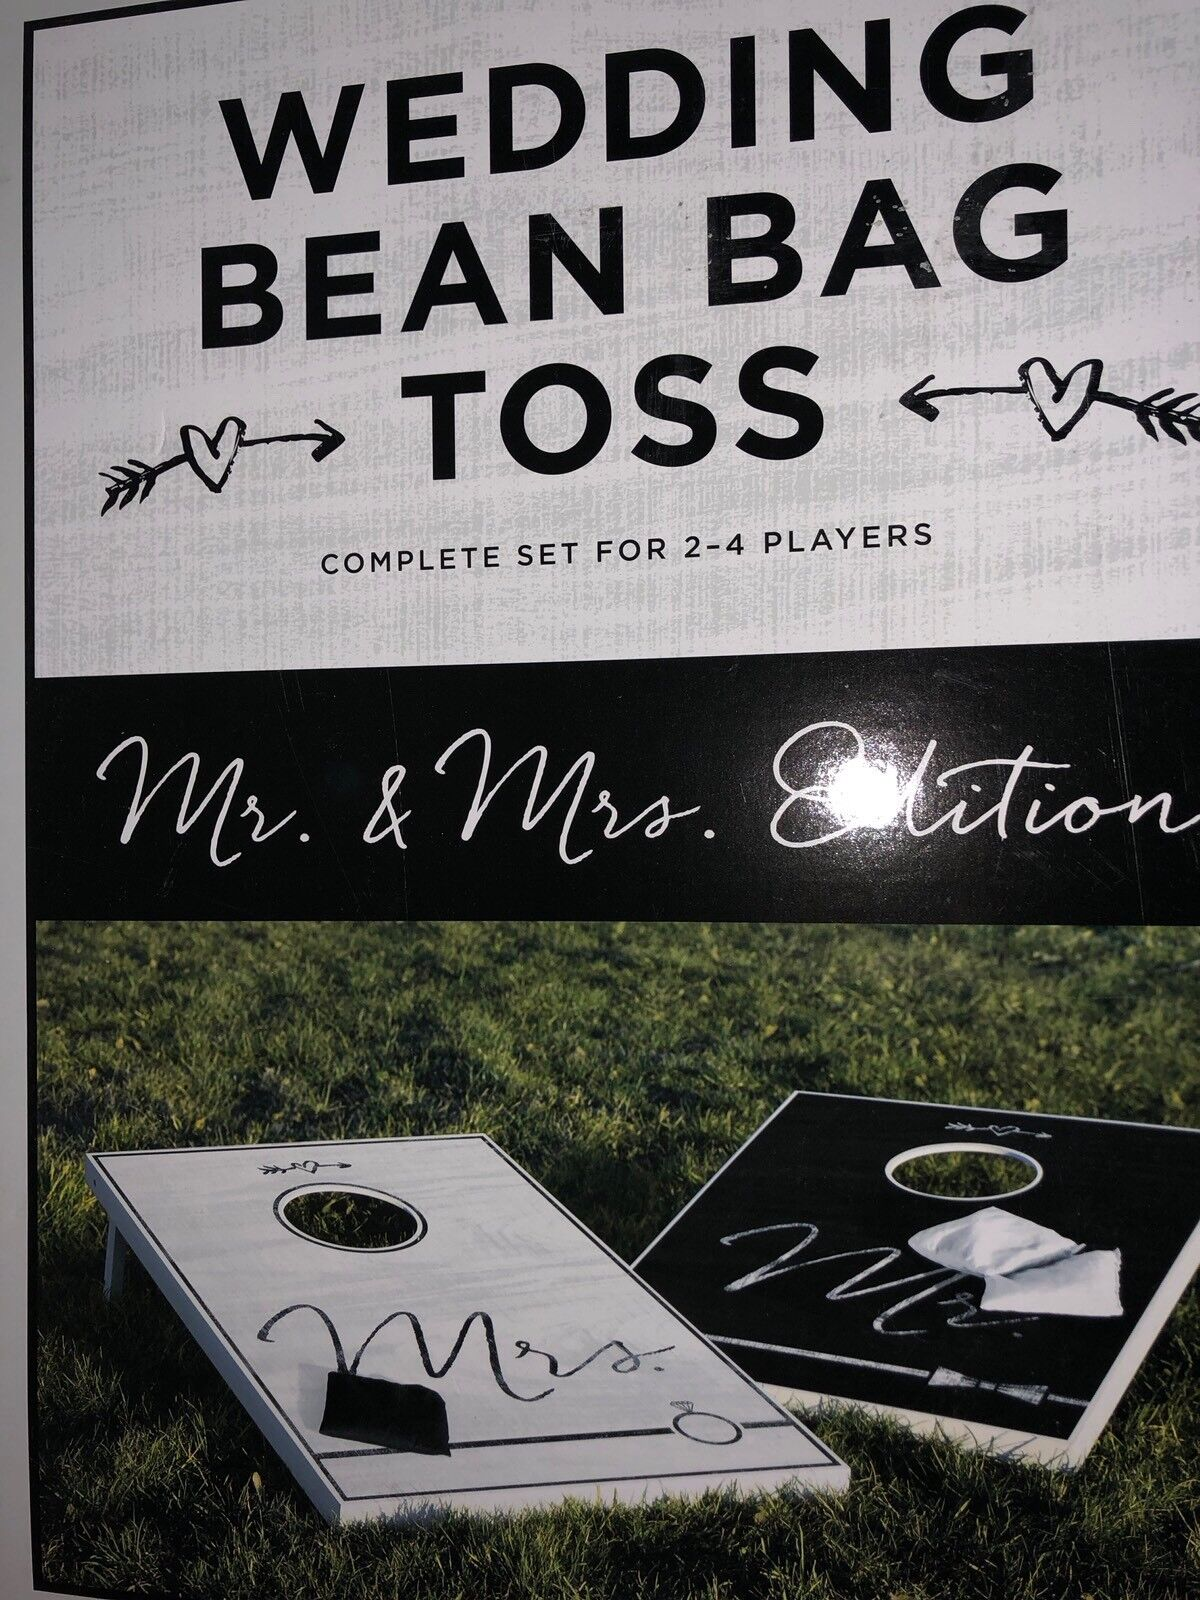 Wooden Corn hole Boards w Bags- Mr & Mrs Edition Wedding Bean Bag Toss Game Set